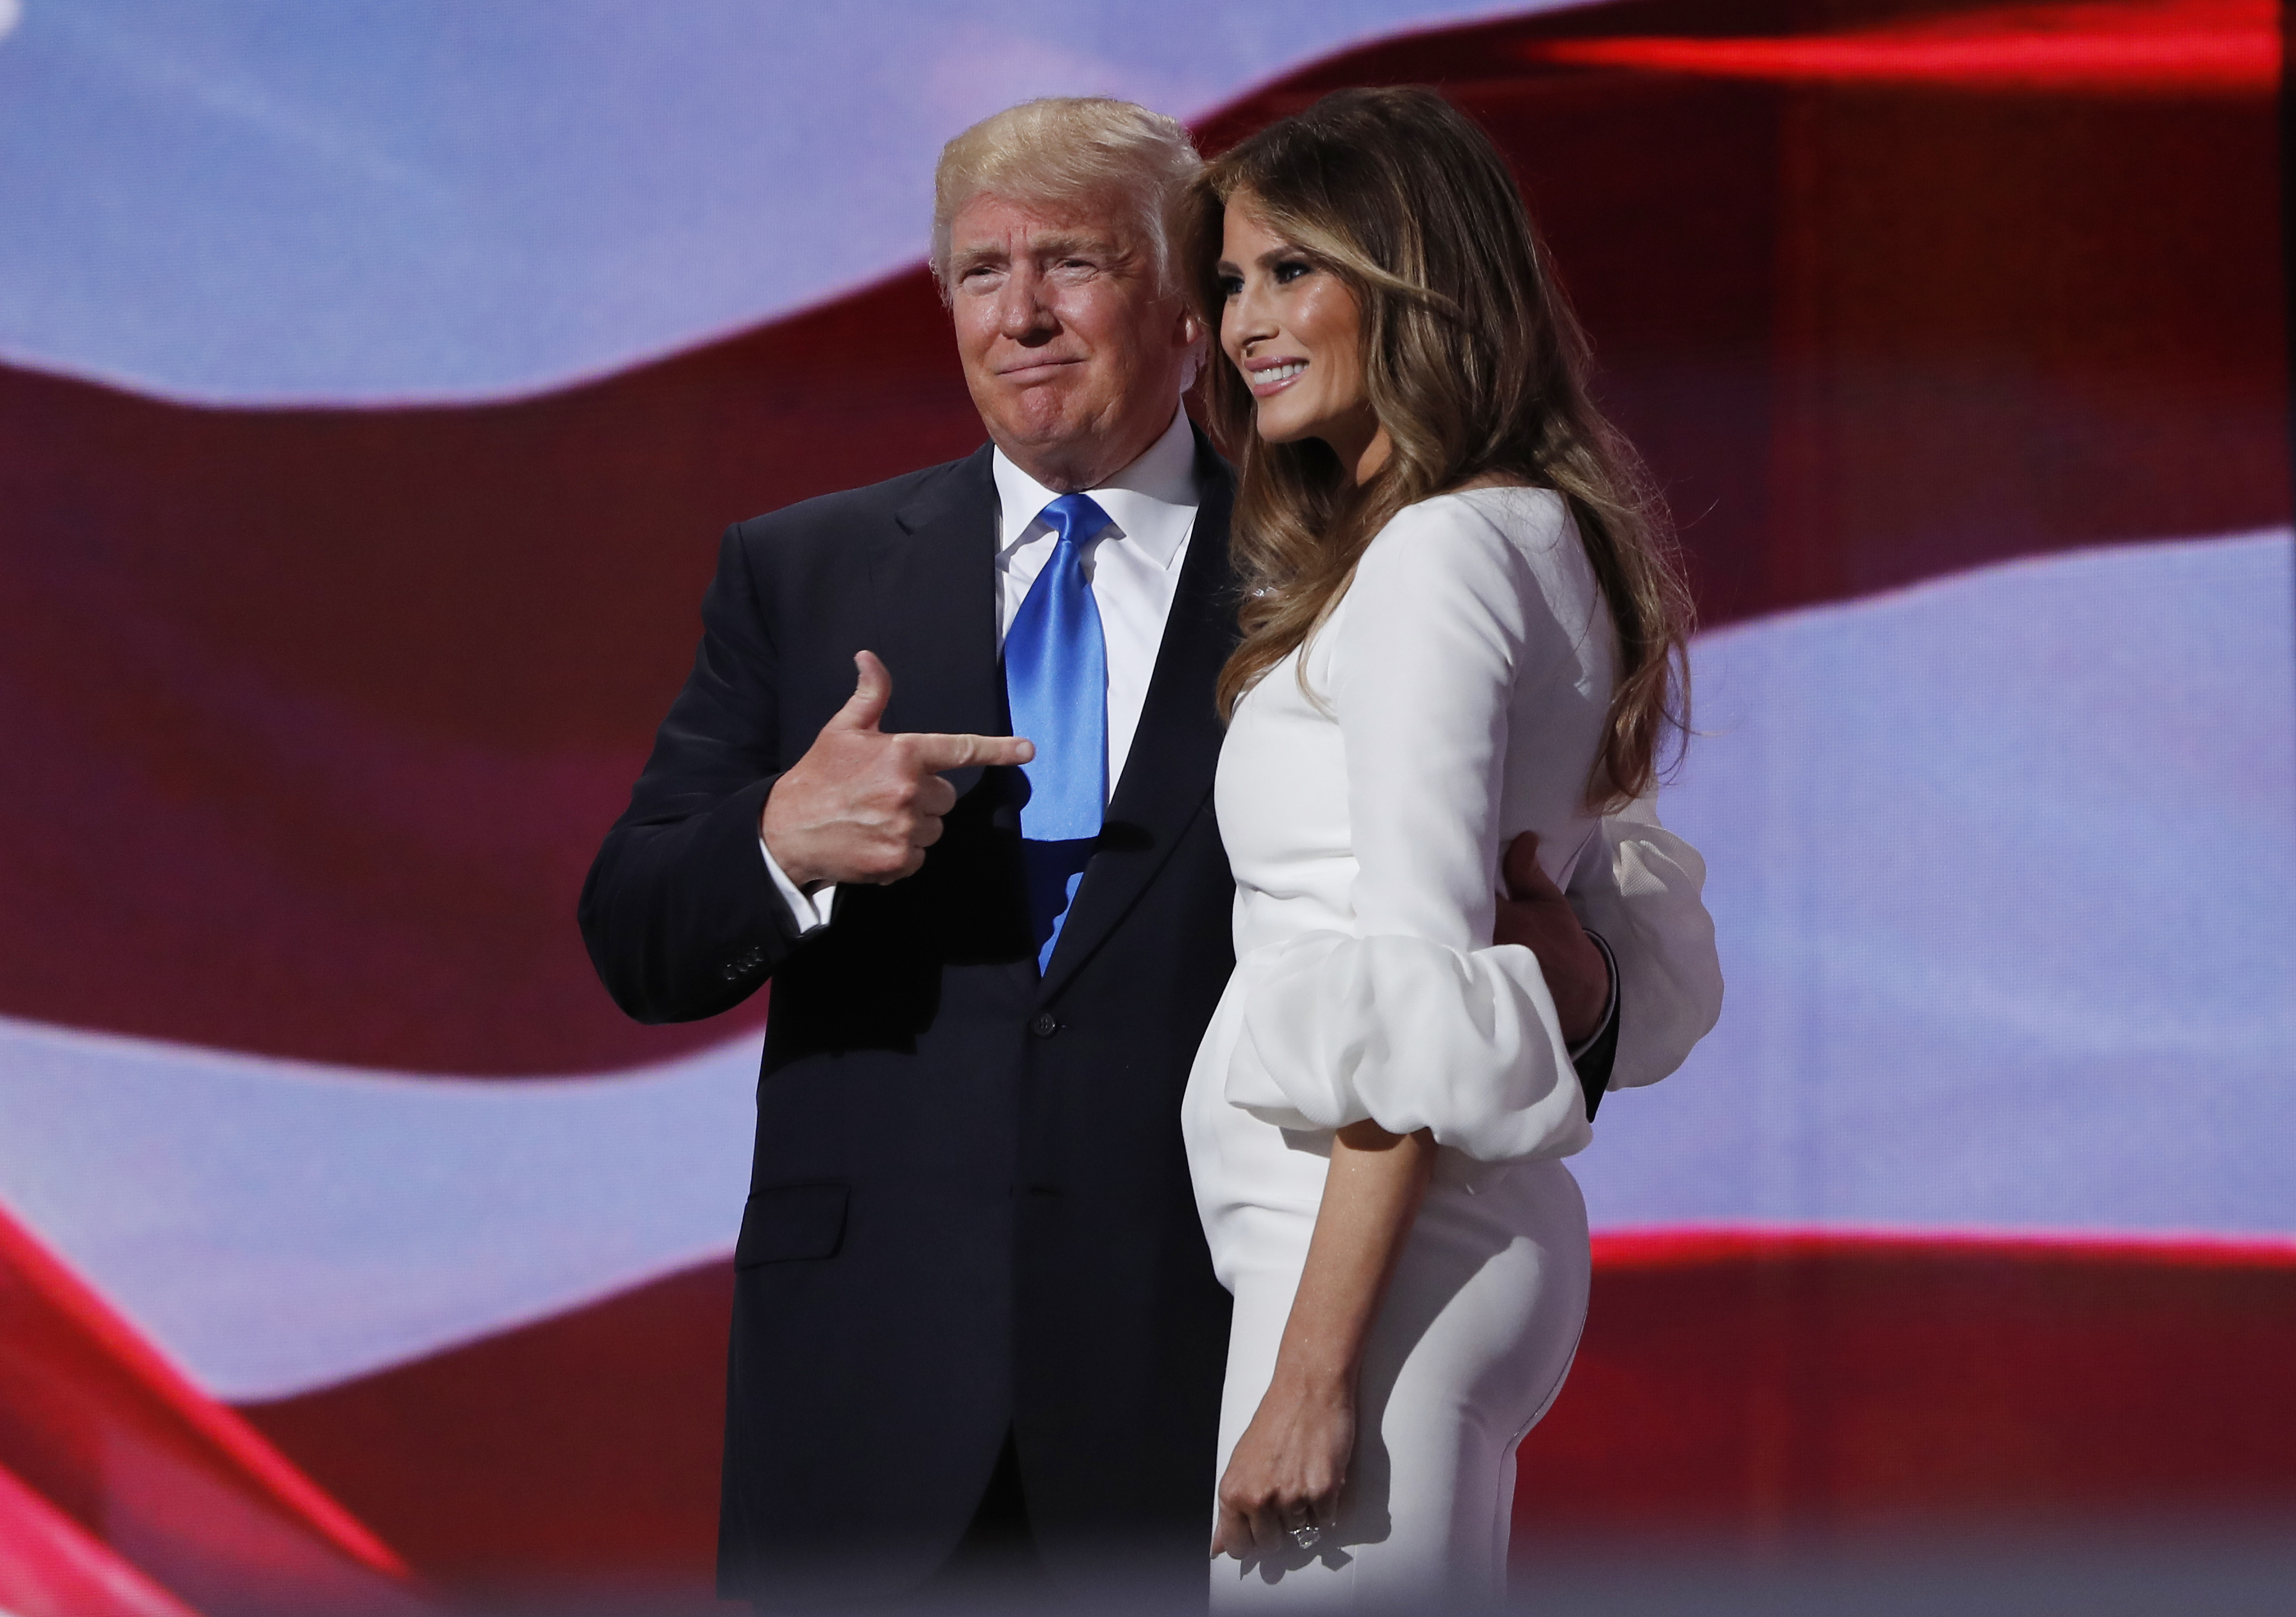 d39a9523f Trump Time Capsule #45: Why Melania's Convention Speech Matters - The  Atlantic